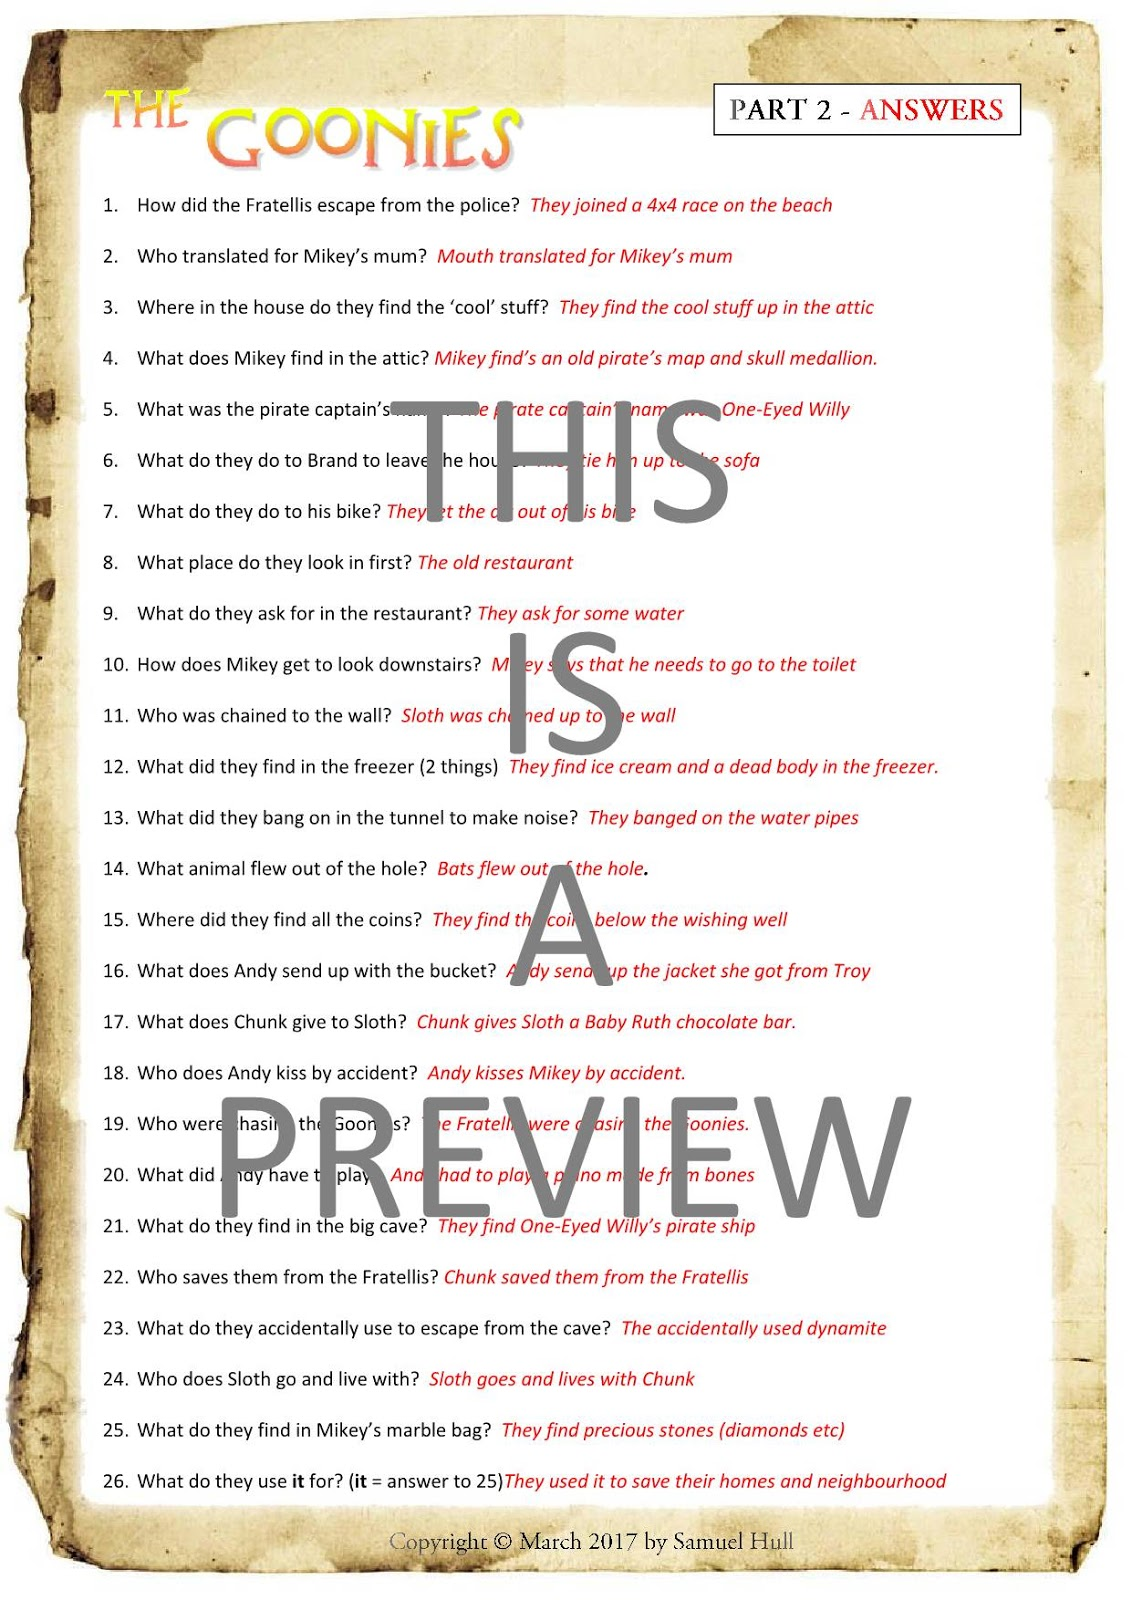 worksheet Troy Movie Worksheet the goonies 1985 movie questions activities answer key httpswww teacherspayteachers comproductthe guide extras included 3038884